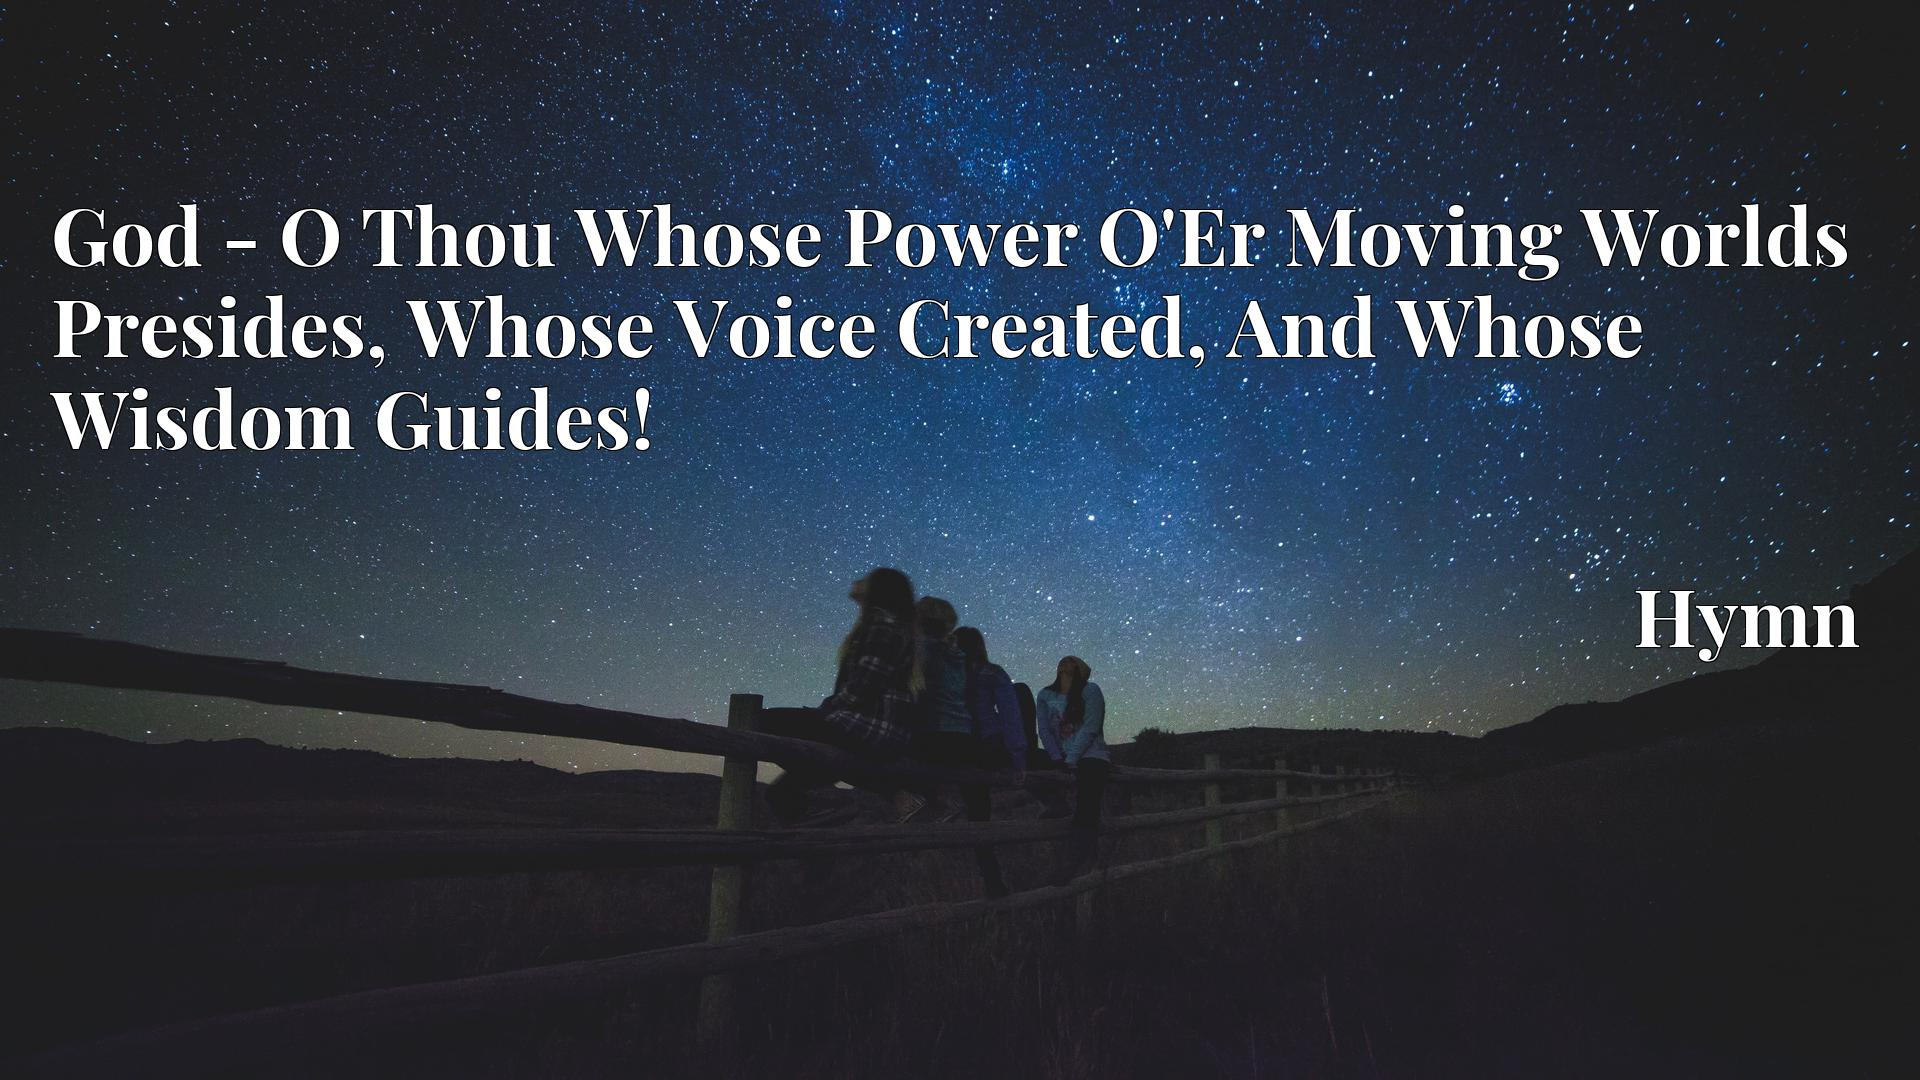 God - O Thou Whose Power O'Er Moving Worlds Presides, Whose Voice Created, And Whose Wisdom Guides! - Hymn